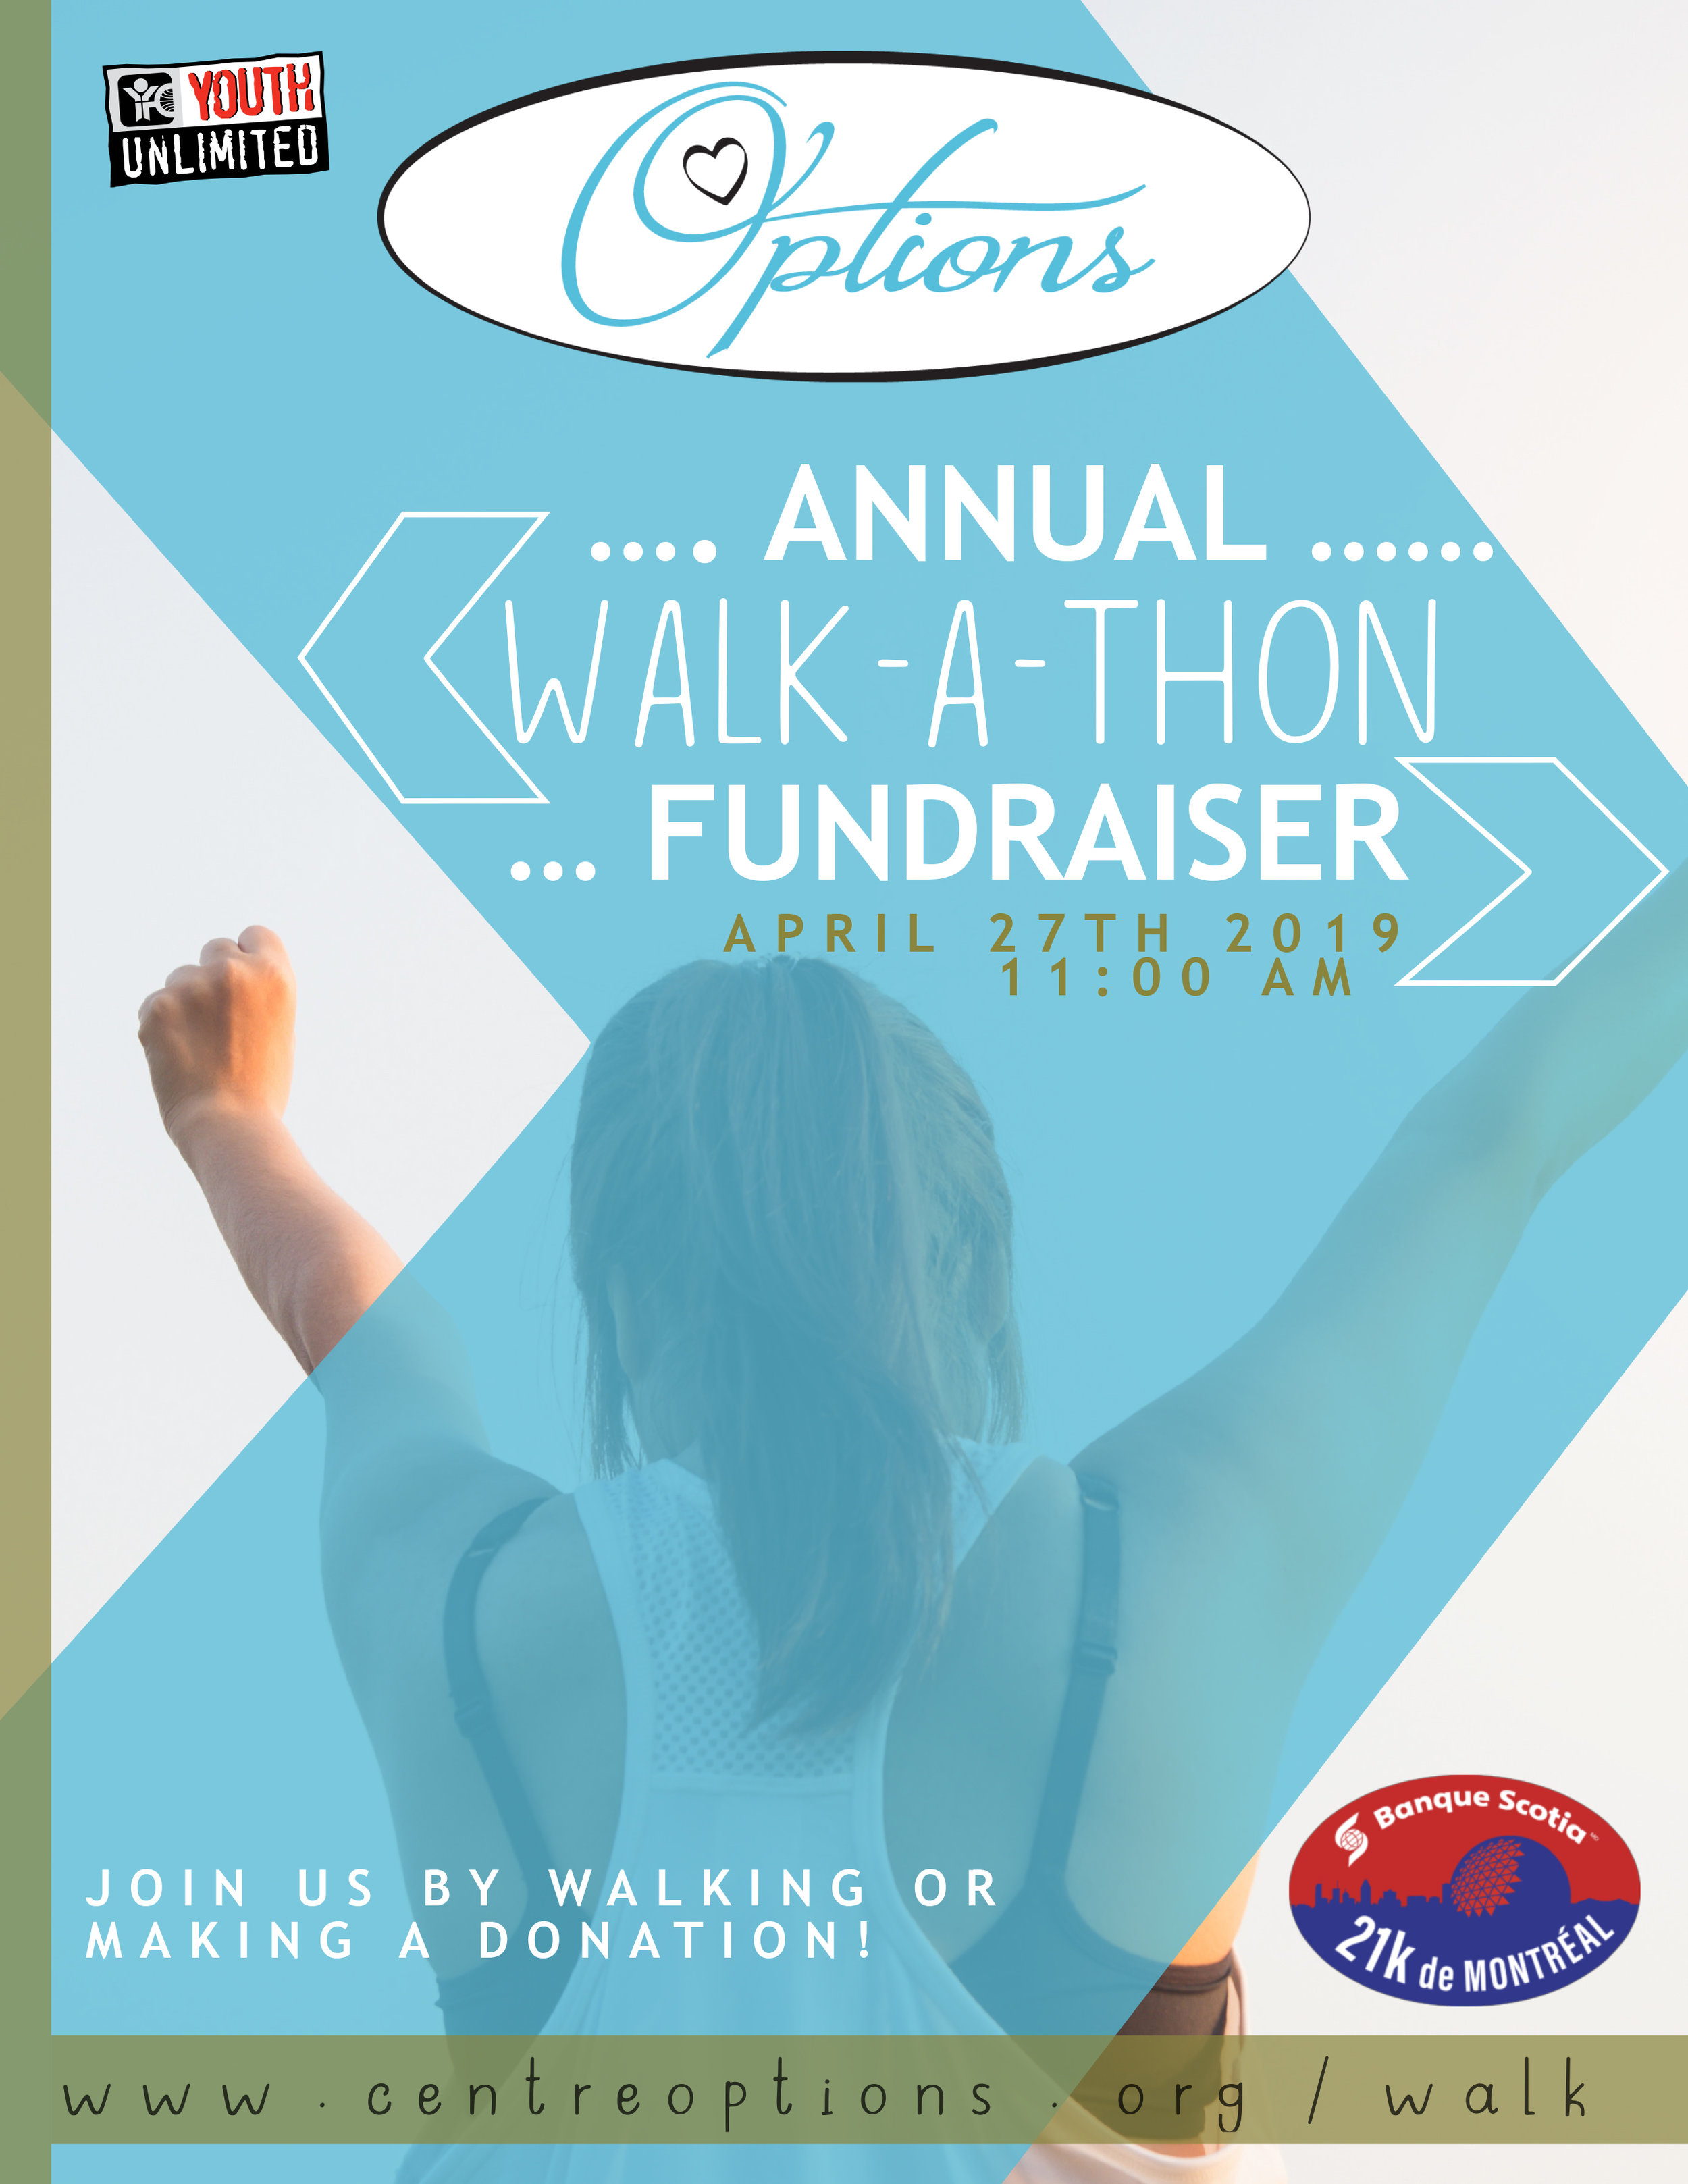 To REGISTER or DONATE visit:  https://www.centreoptions.org/walk